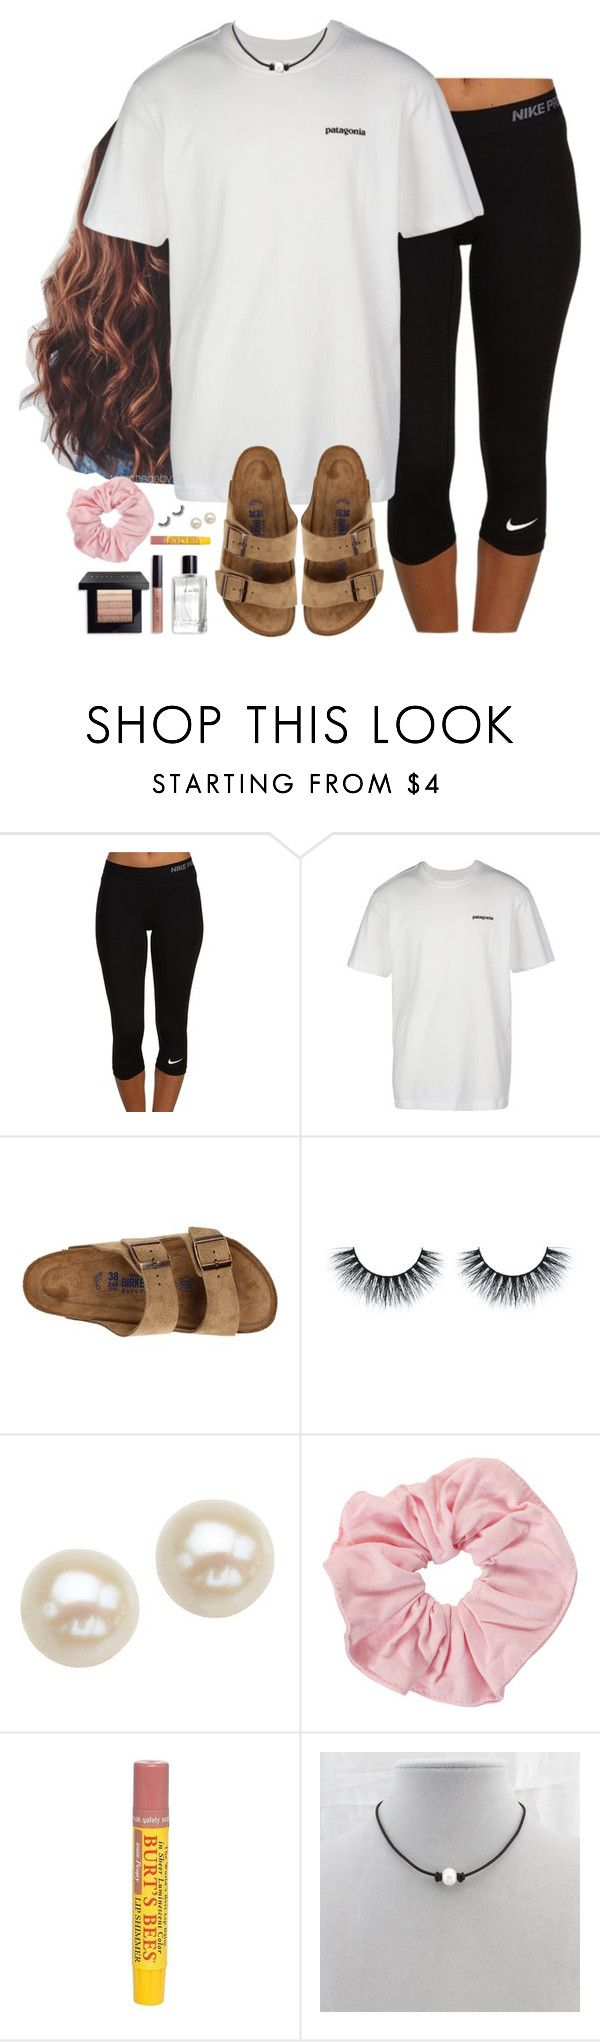 """❤️"" by aweaver-2 on Polyvore featuring NIKE, Patagonia, Birkenstock, Honora, Burt's Bees and Bobbi Brown Cosmetics"